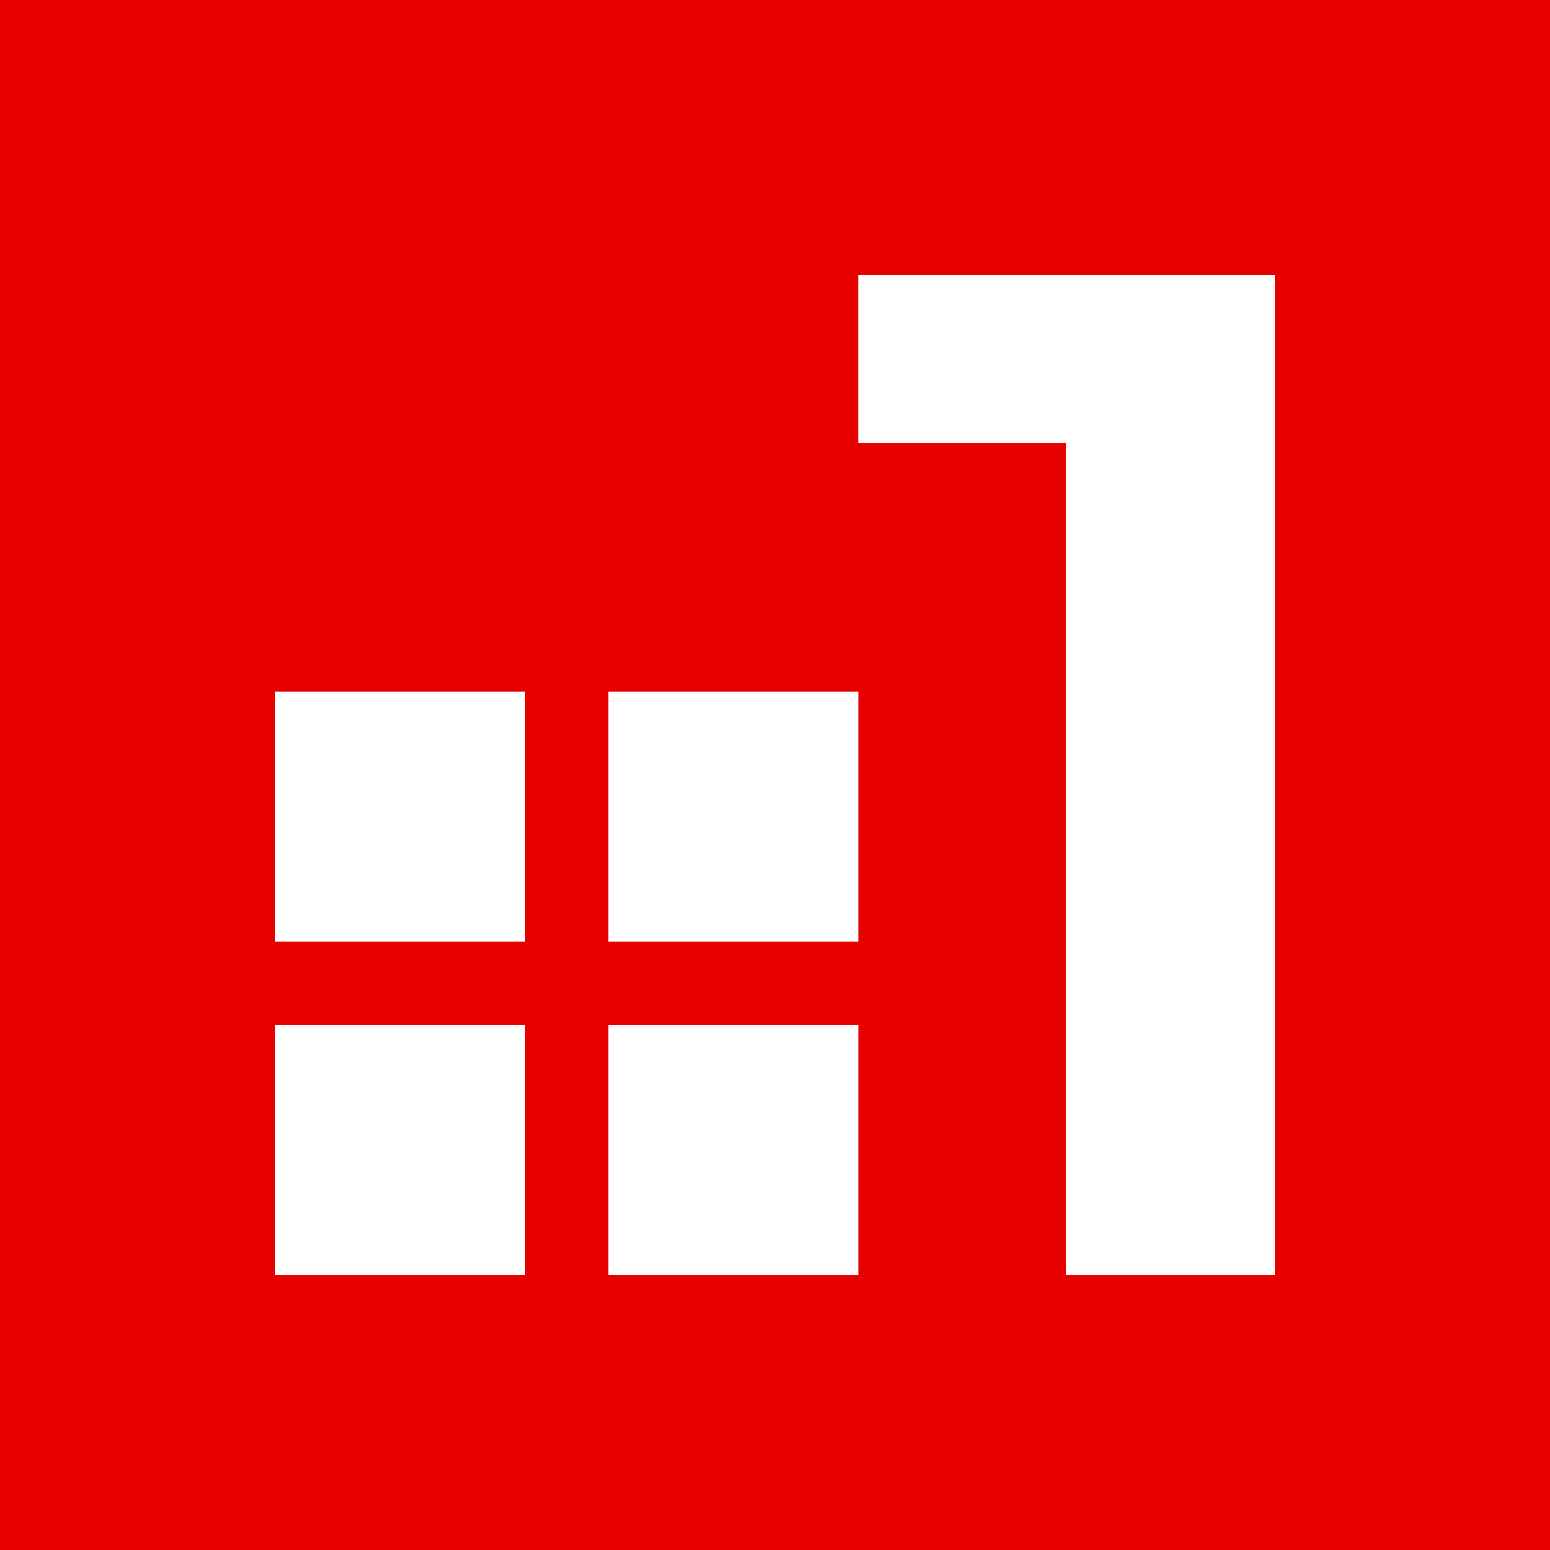 LH symbol with borders WHITE - RED BGb